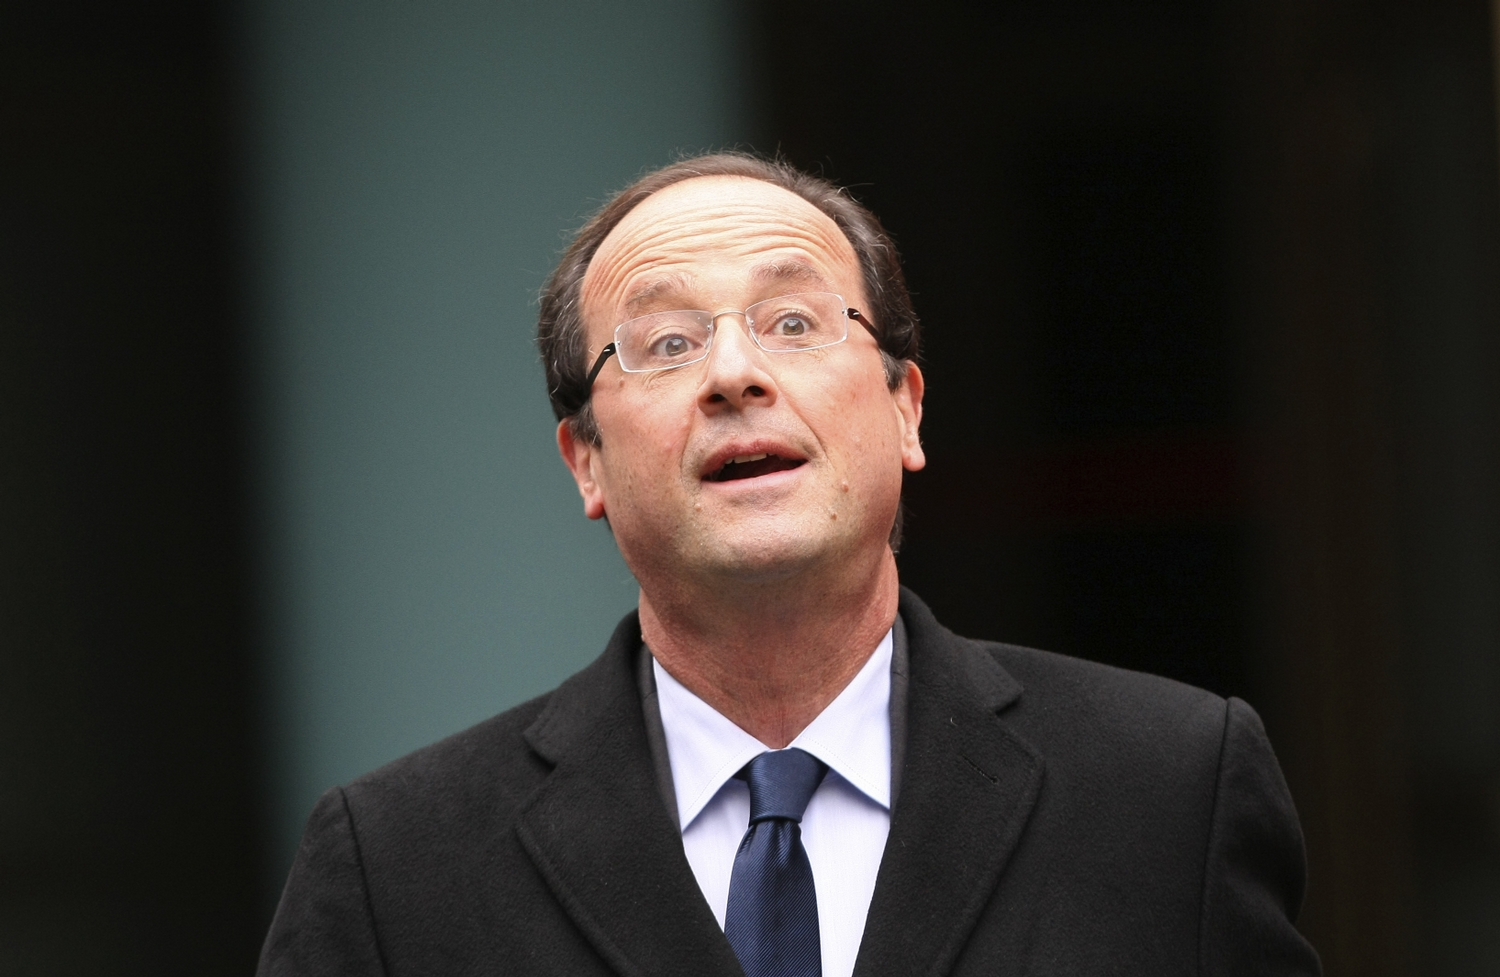 http://www.cagou.com/blog/wp-content/uploads/2013/01/newsfilename_44033_francois_hollande.jpg